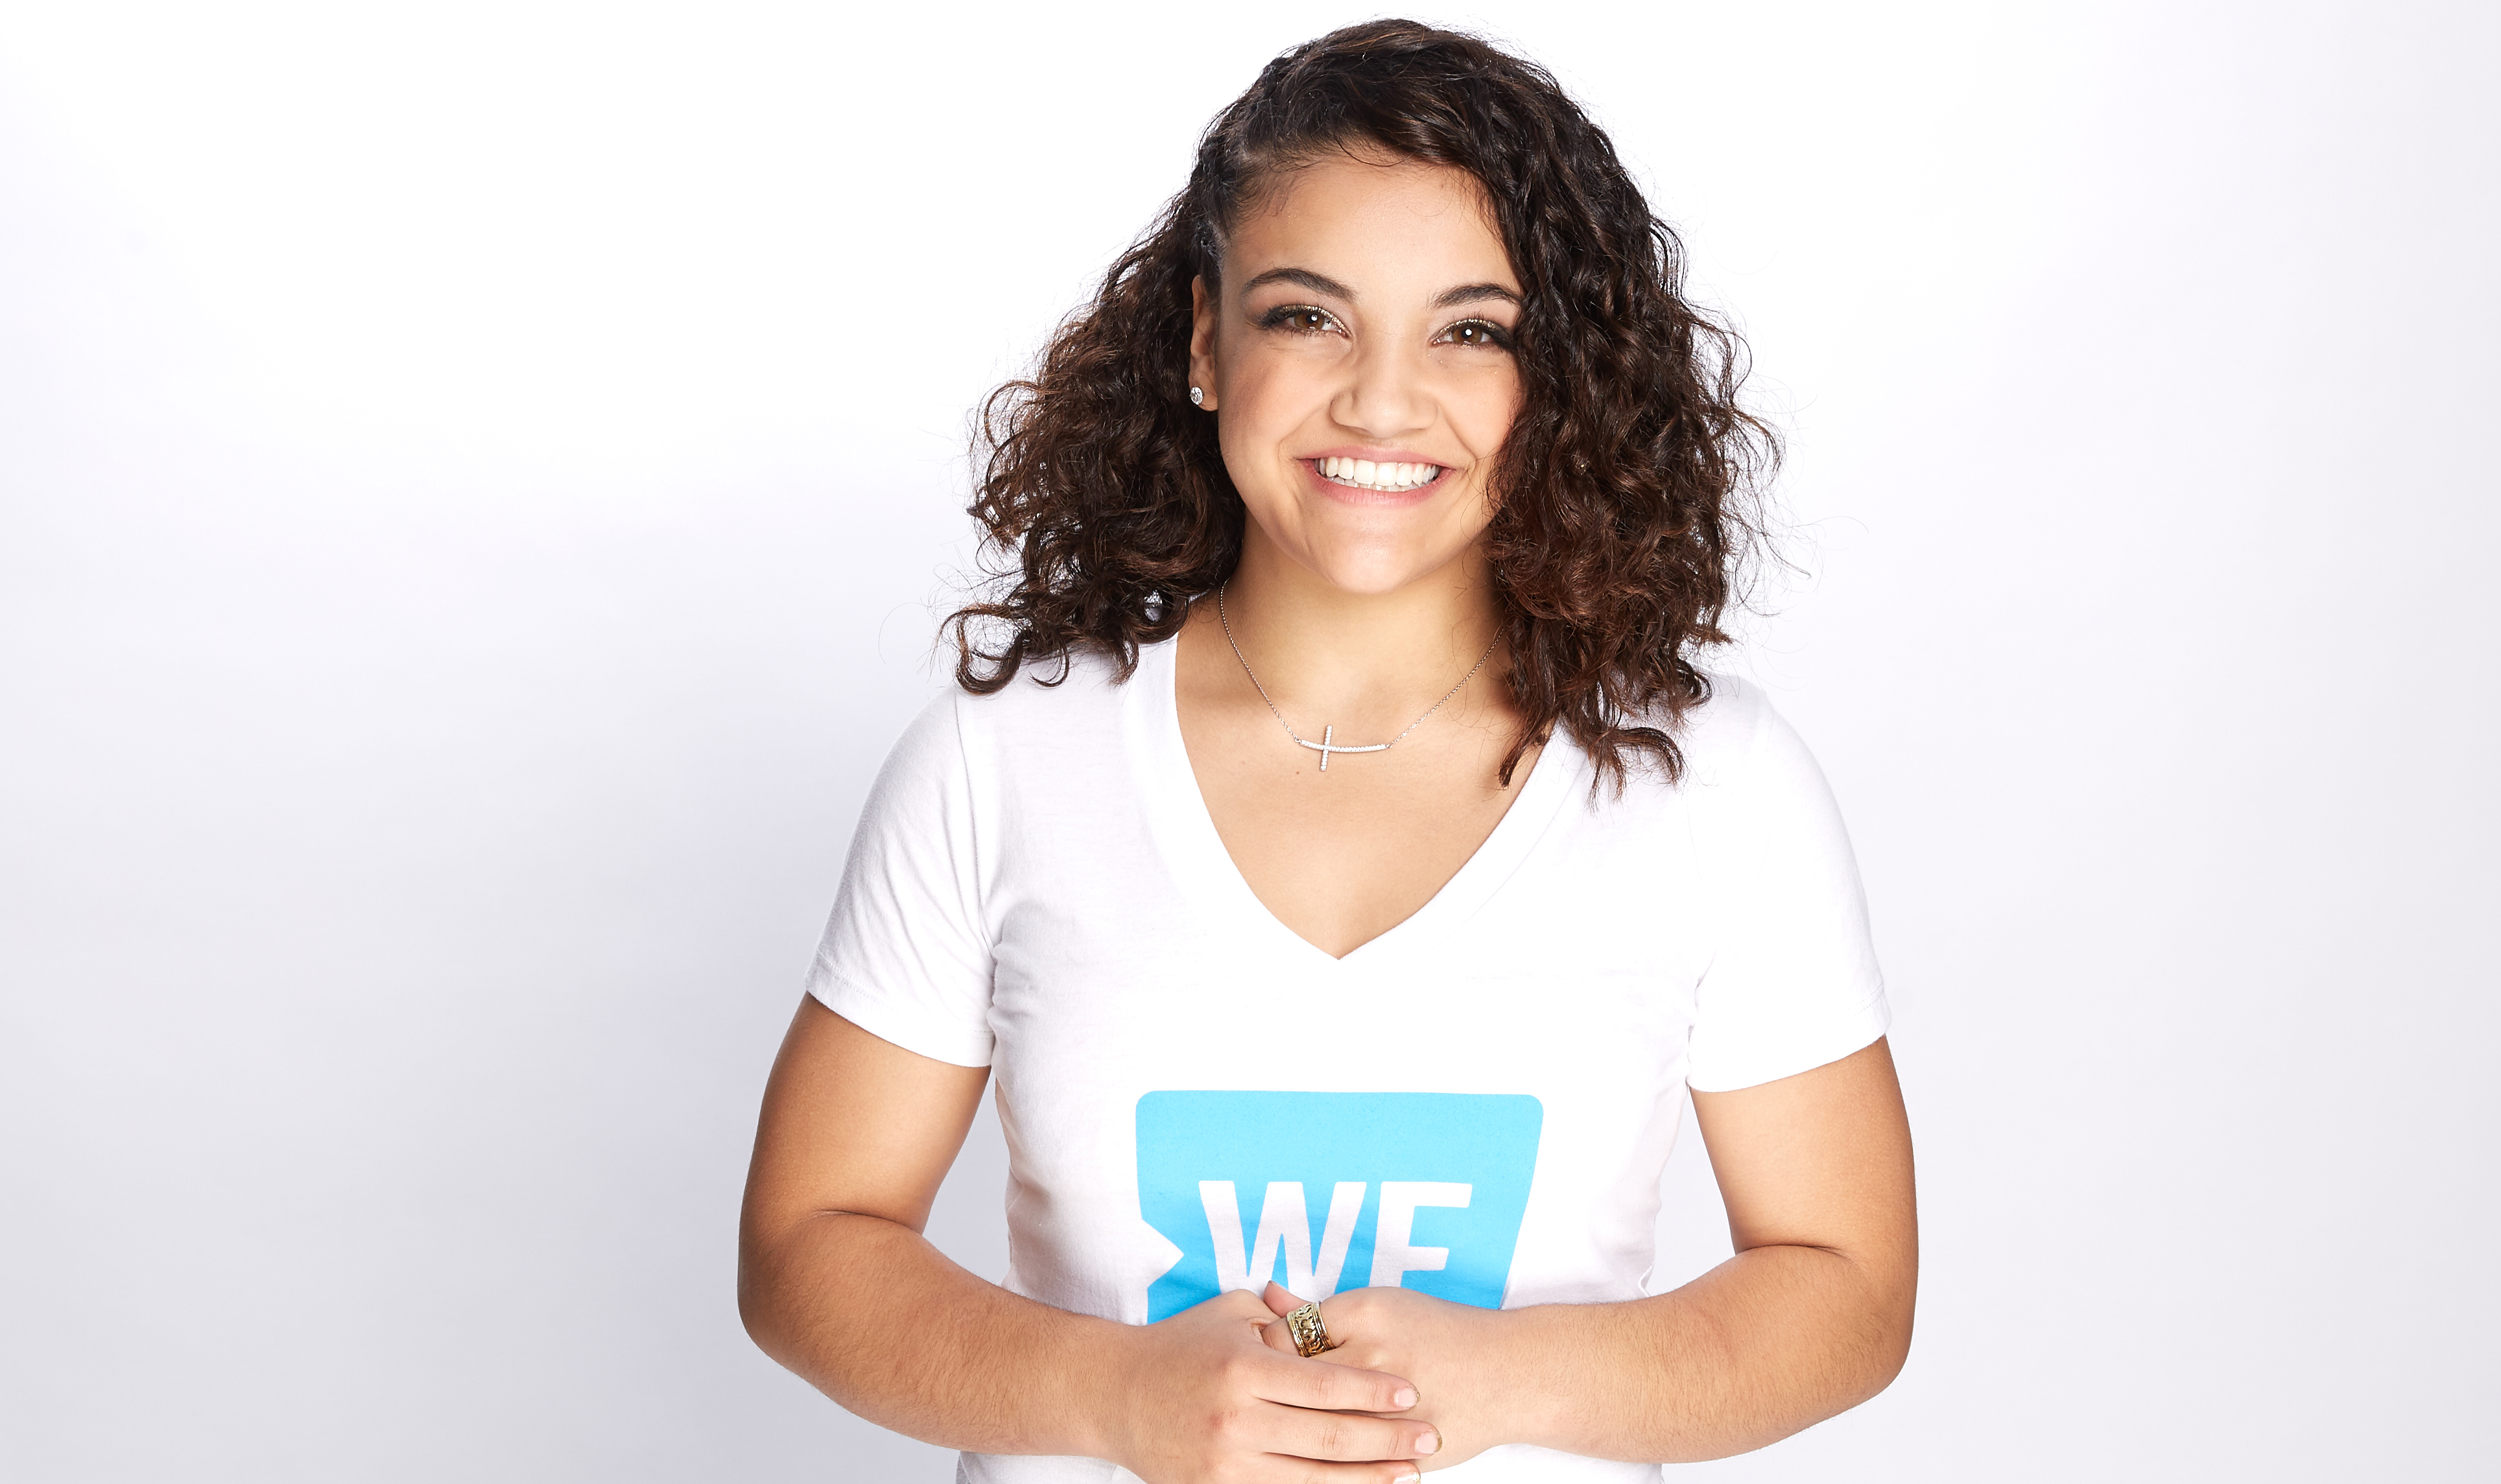 Laurie Hernandez, US Olympic Gold Medalist and KPMG Literacy Champion